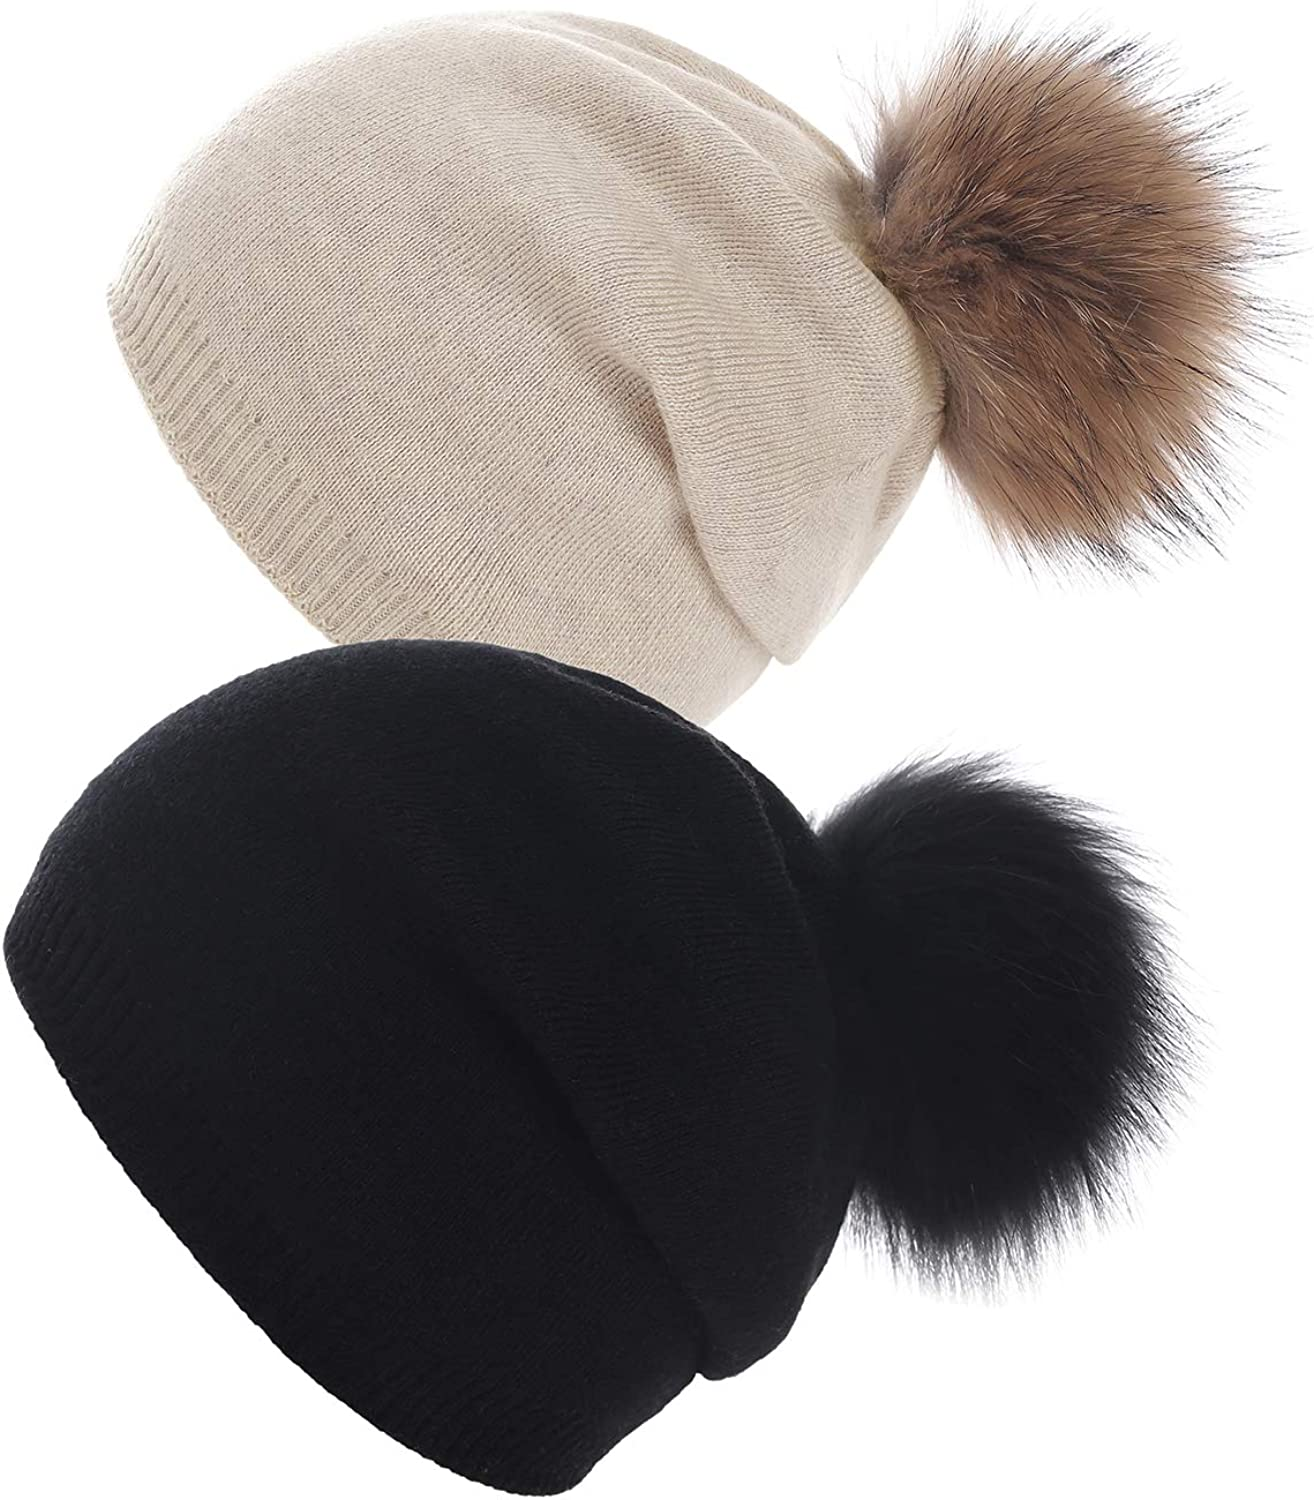 Women Knit Wool Beanie Factory outlet - Winter Real Ski Omaha Mall Rac Solid Hats Cashmere